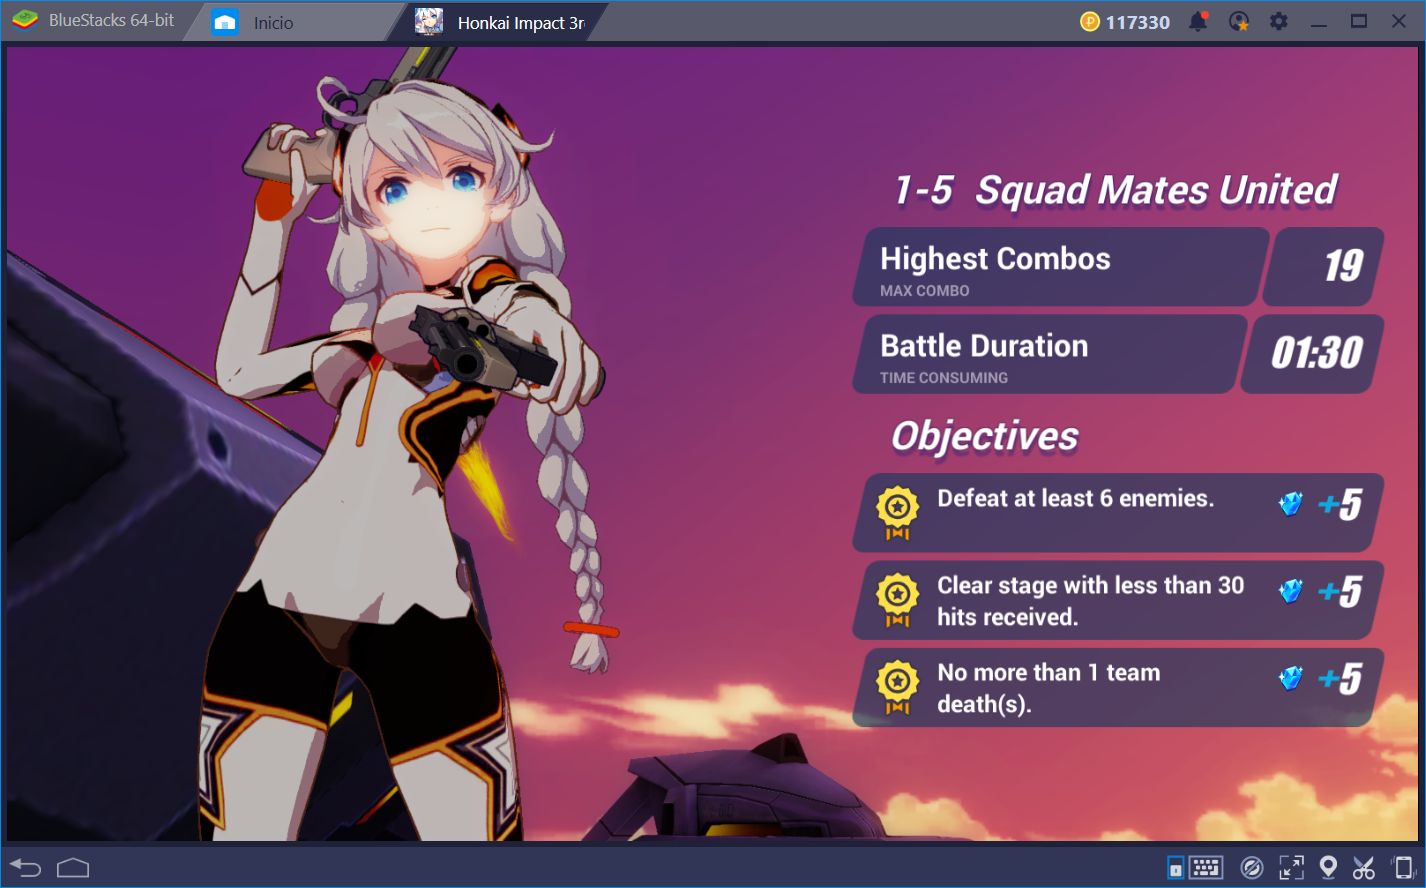 Honkai Impact 3 on PC – How to Download and Install on PC